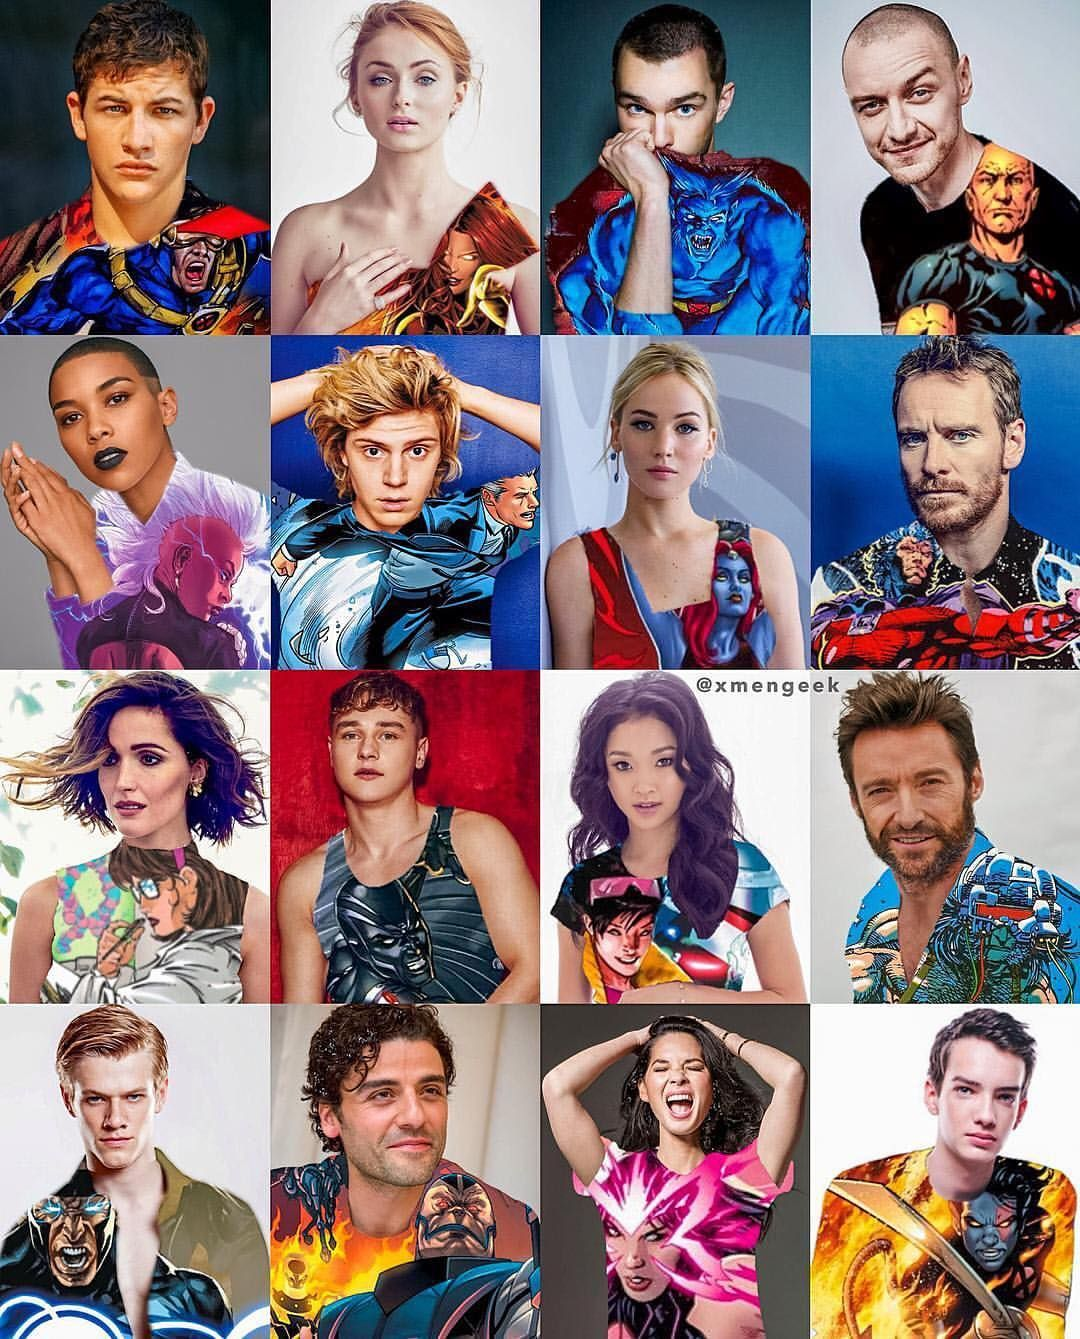 Pin By Michelle Gutierrez On Art Xmen Apocalypse X Man Cast X Men Apocalypse